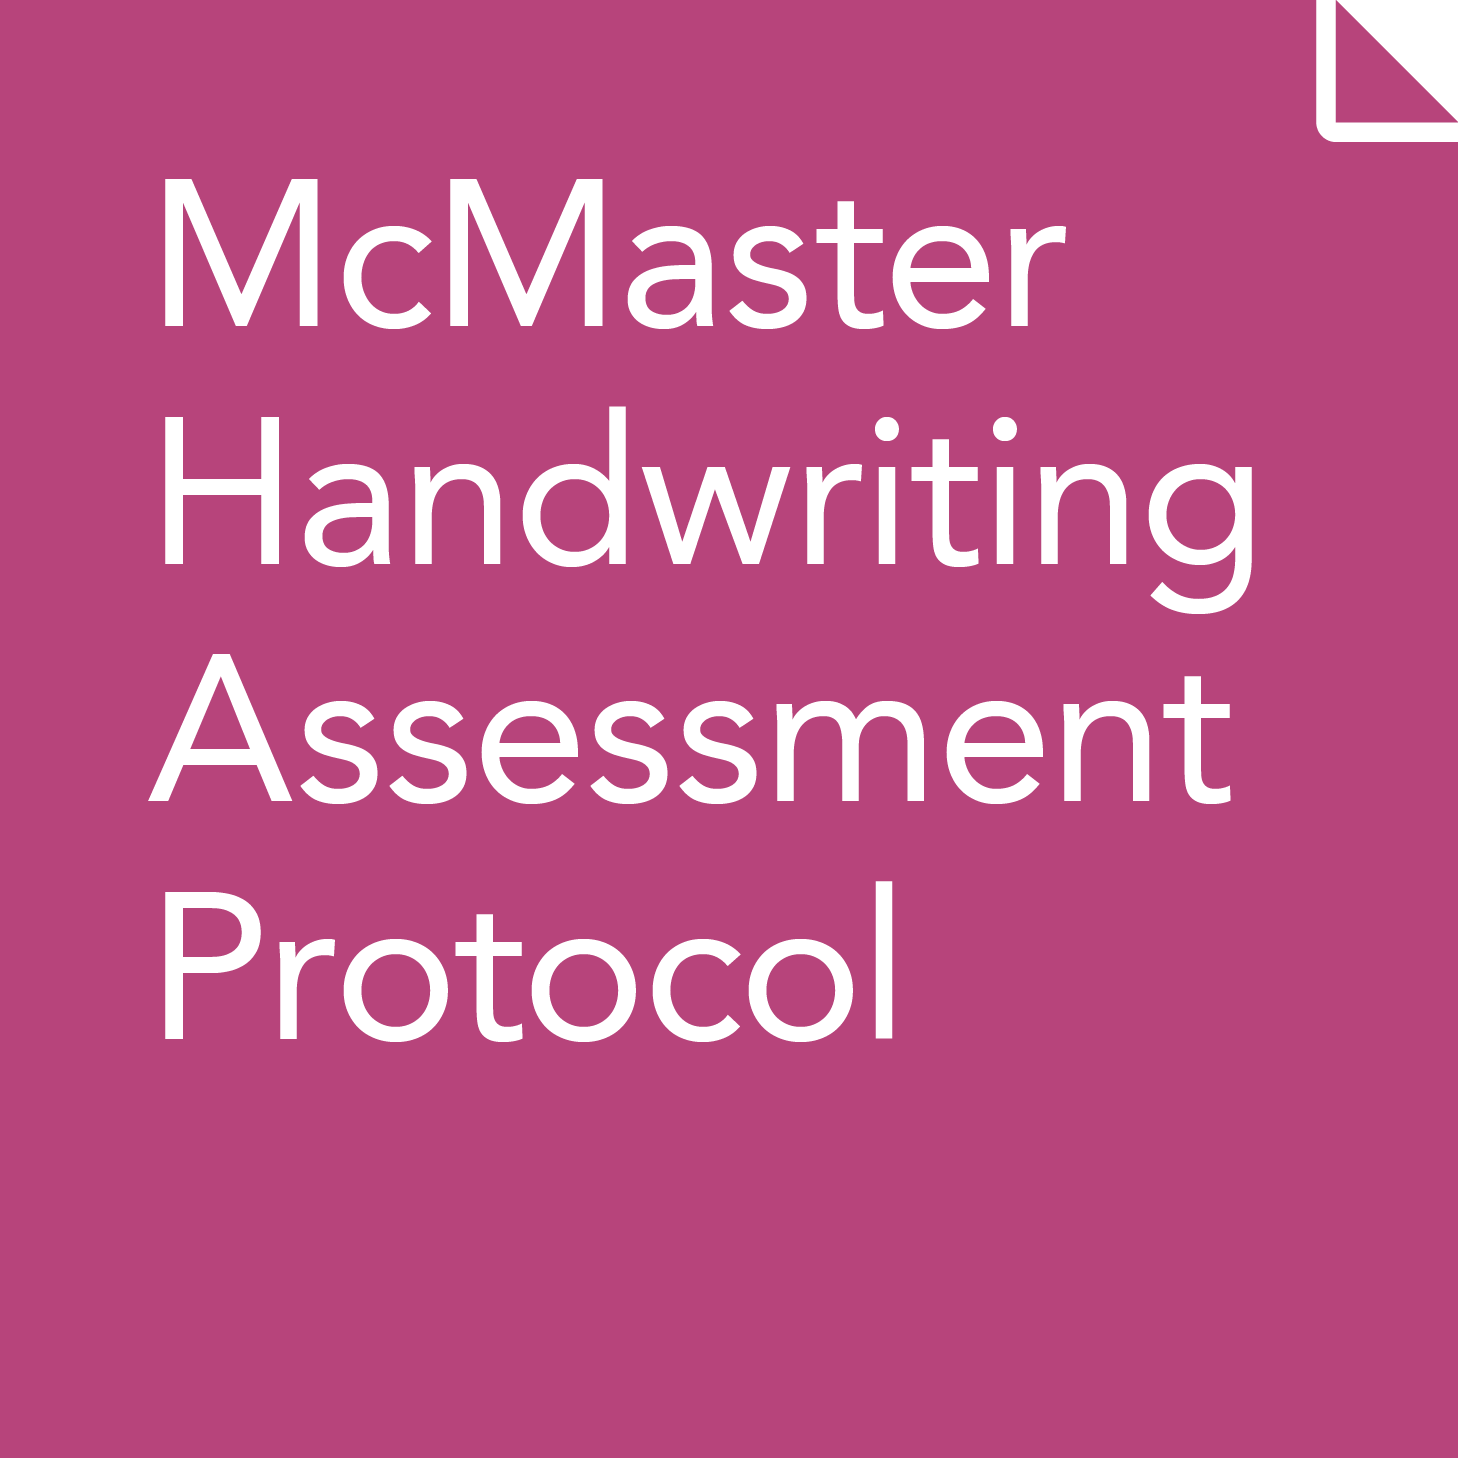 Handwriting assessment